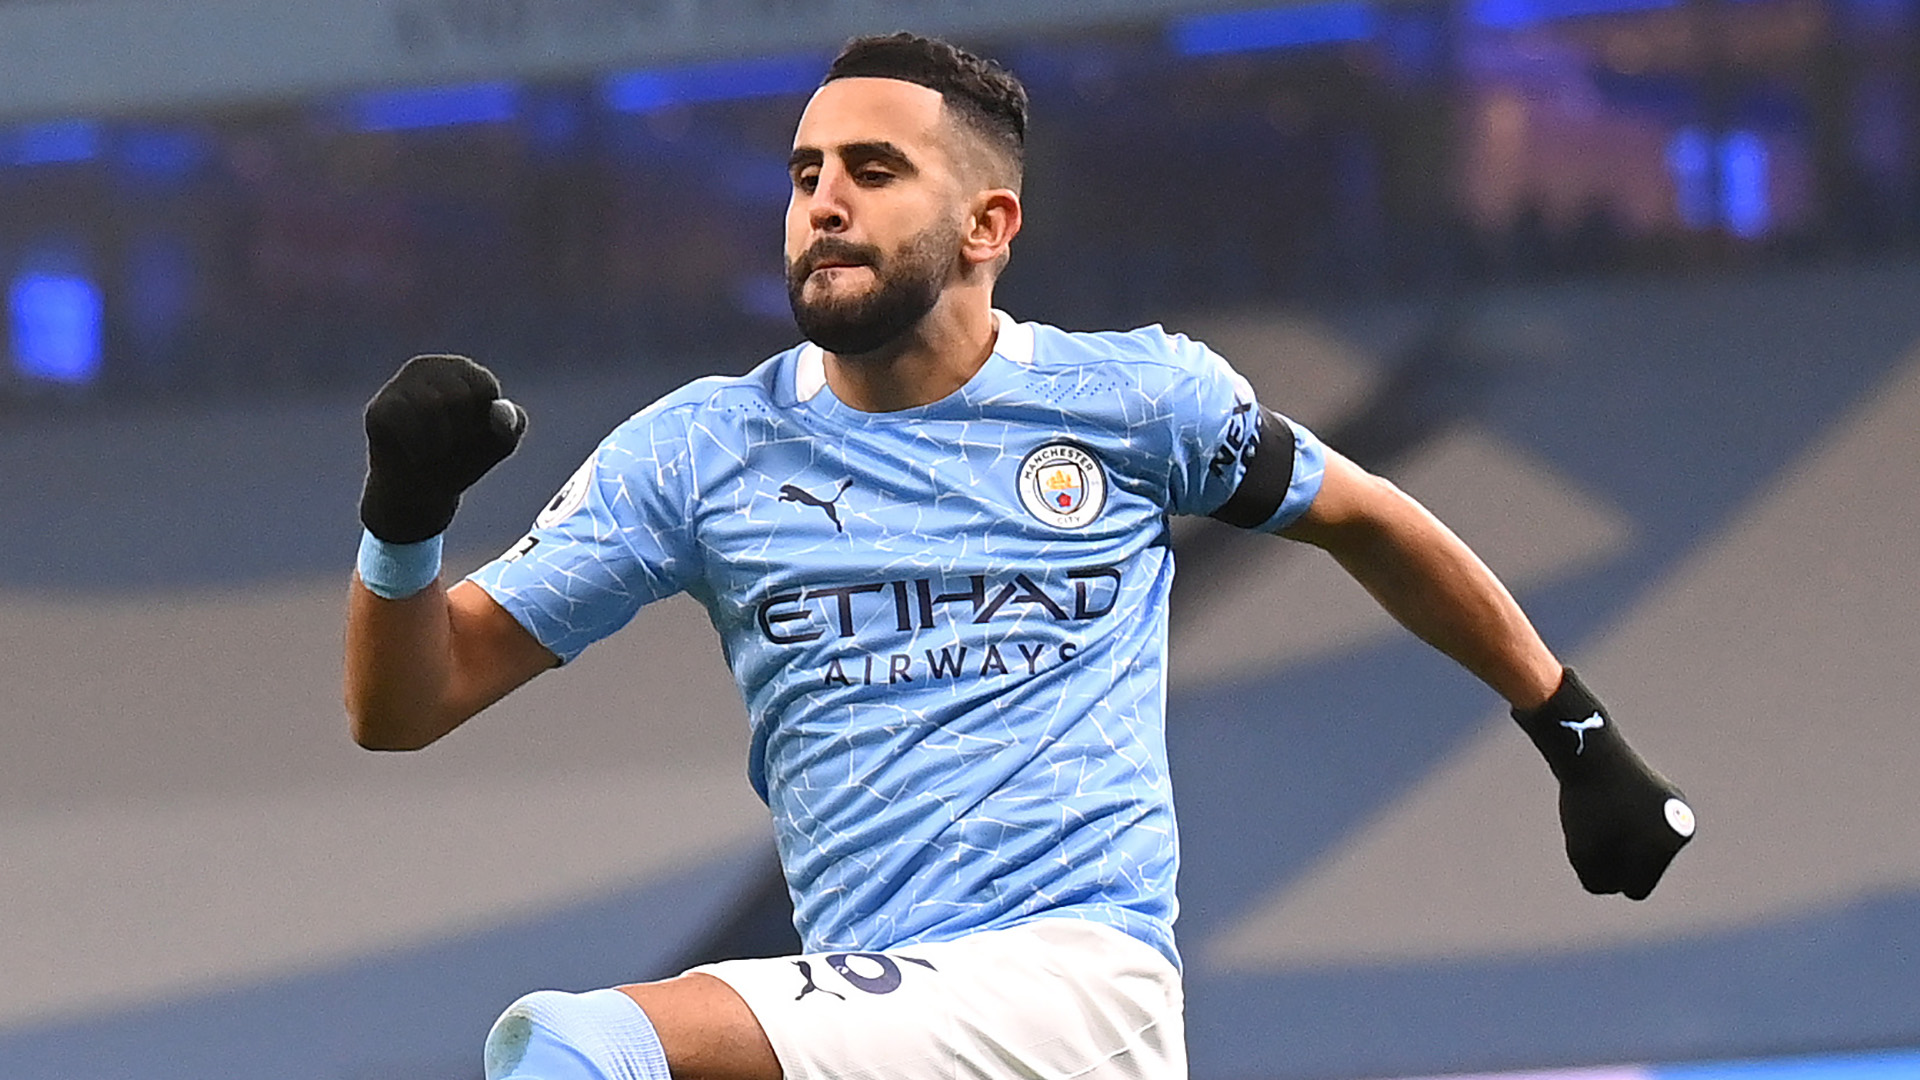 Mahrez excites Manchester City legend Goater with his 'magical left foot' and 'pure quality'